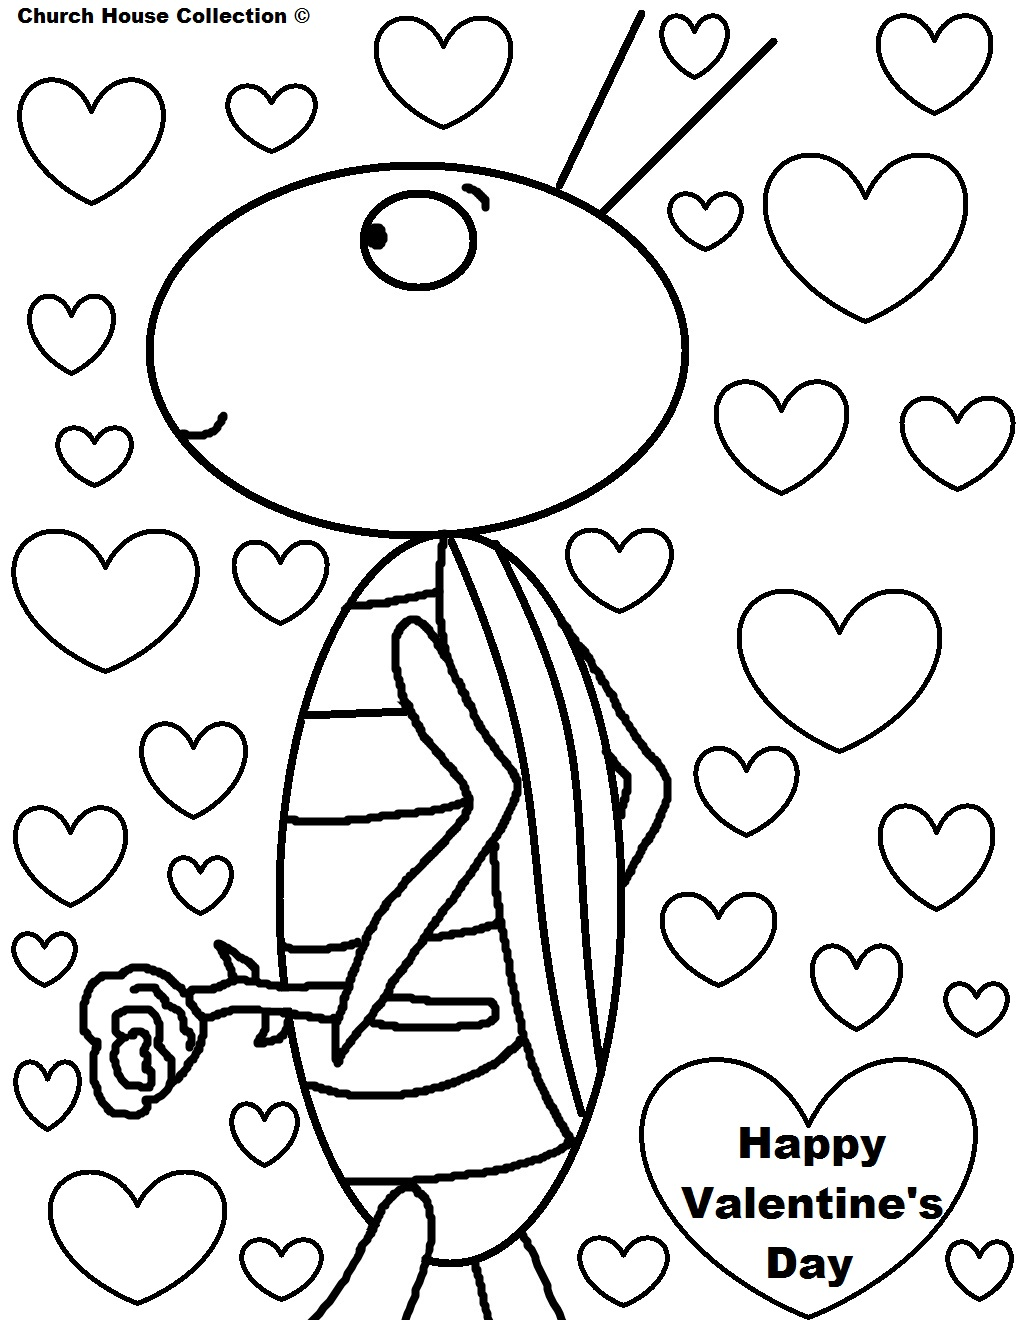 happy valentines day coloring pages grasshopper holding a rose with hearts grasshopper